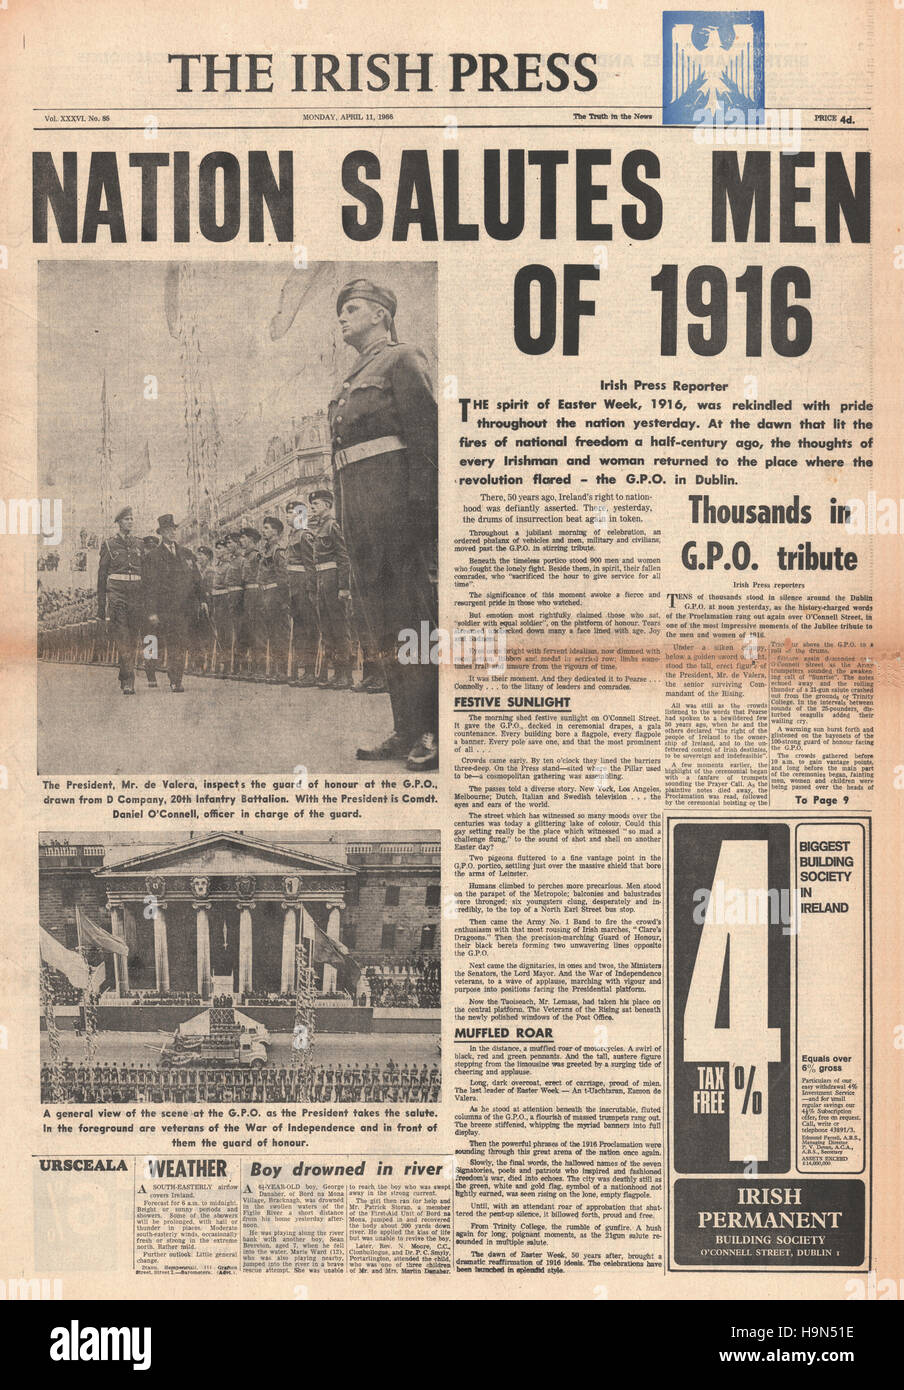 1966 Irish Press front page Centenary Parade of Easter Uprising - Stock Image